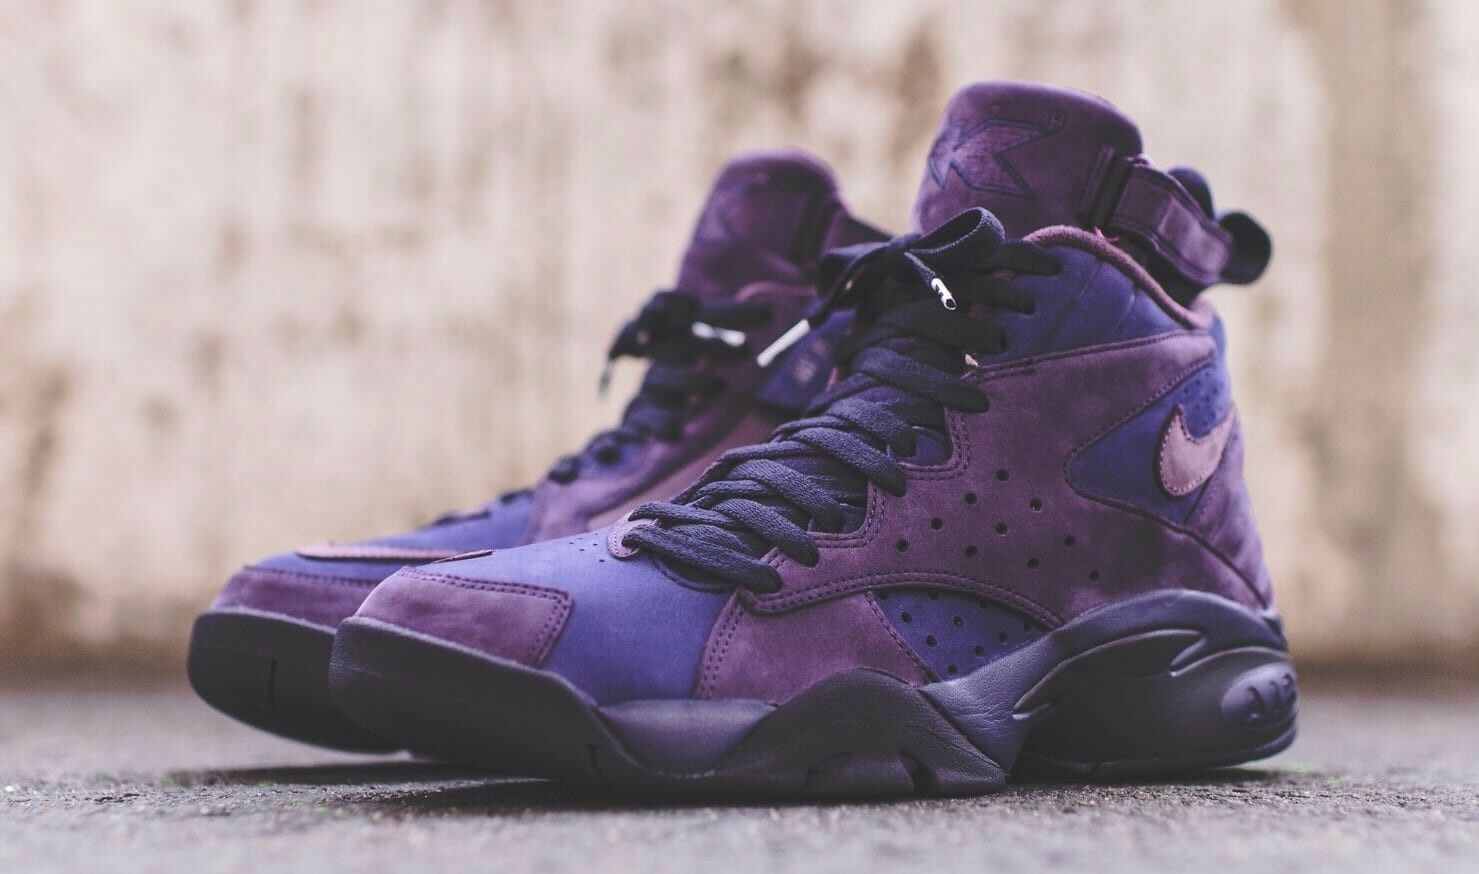 Kith x Nike Air Maestro II High - Purple - Comfortable The latest discount shoes for men and women